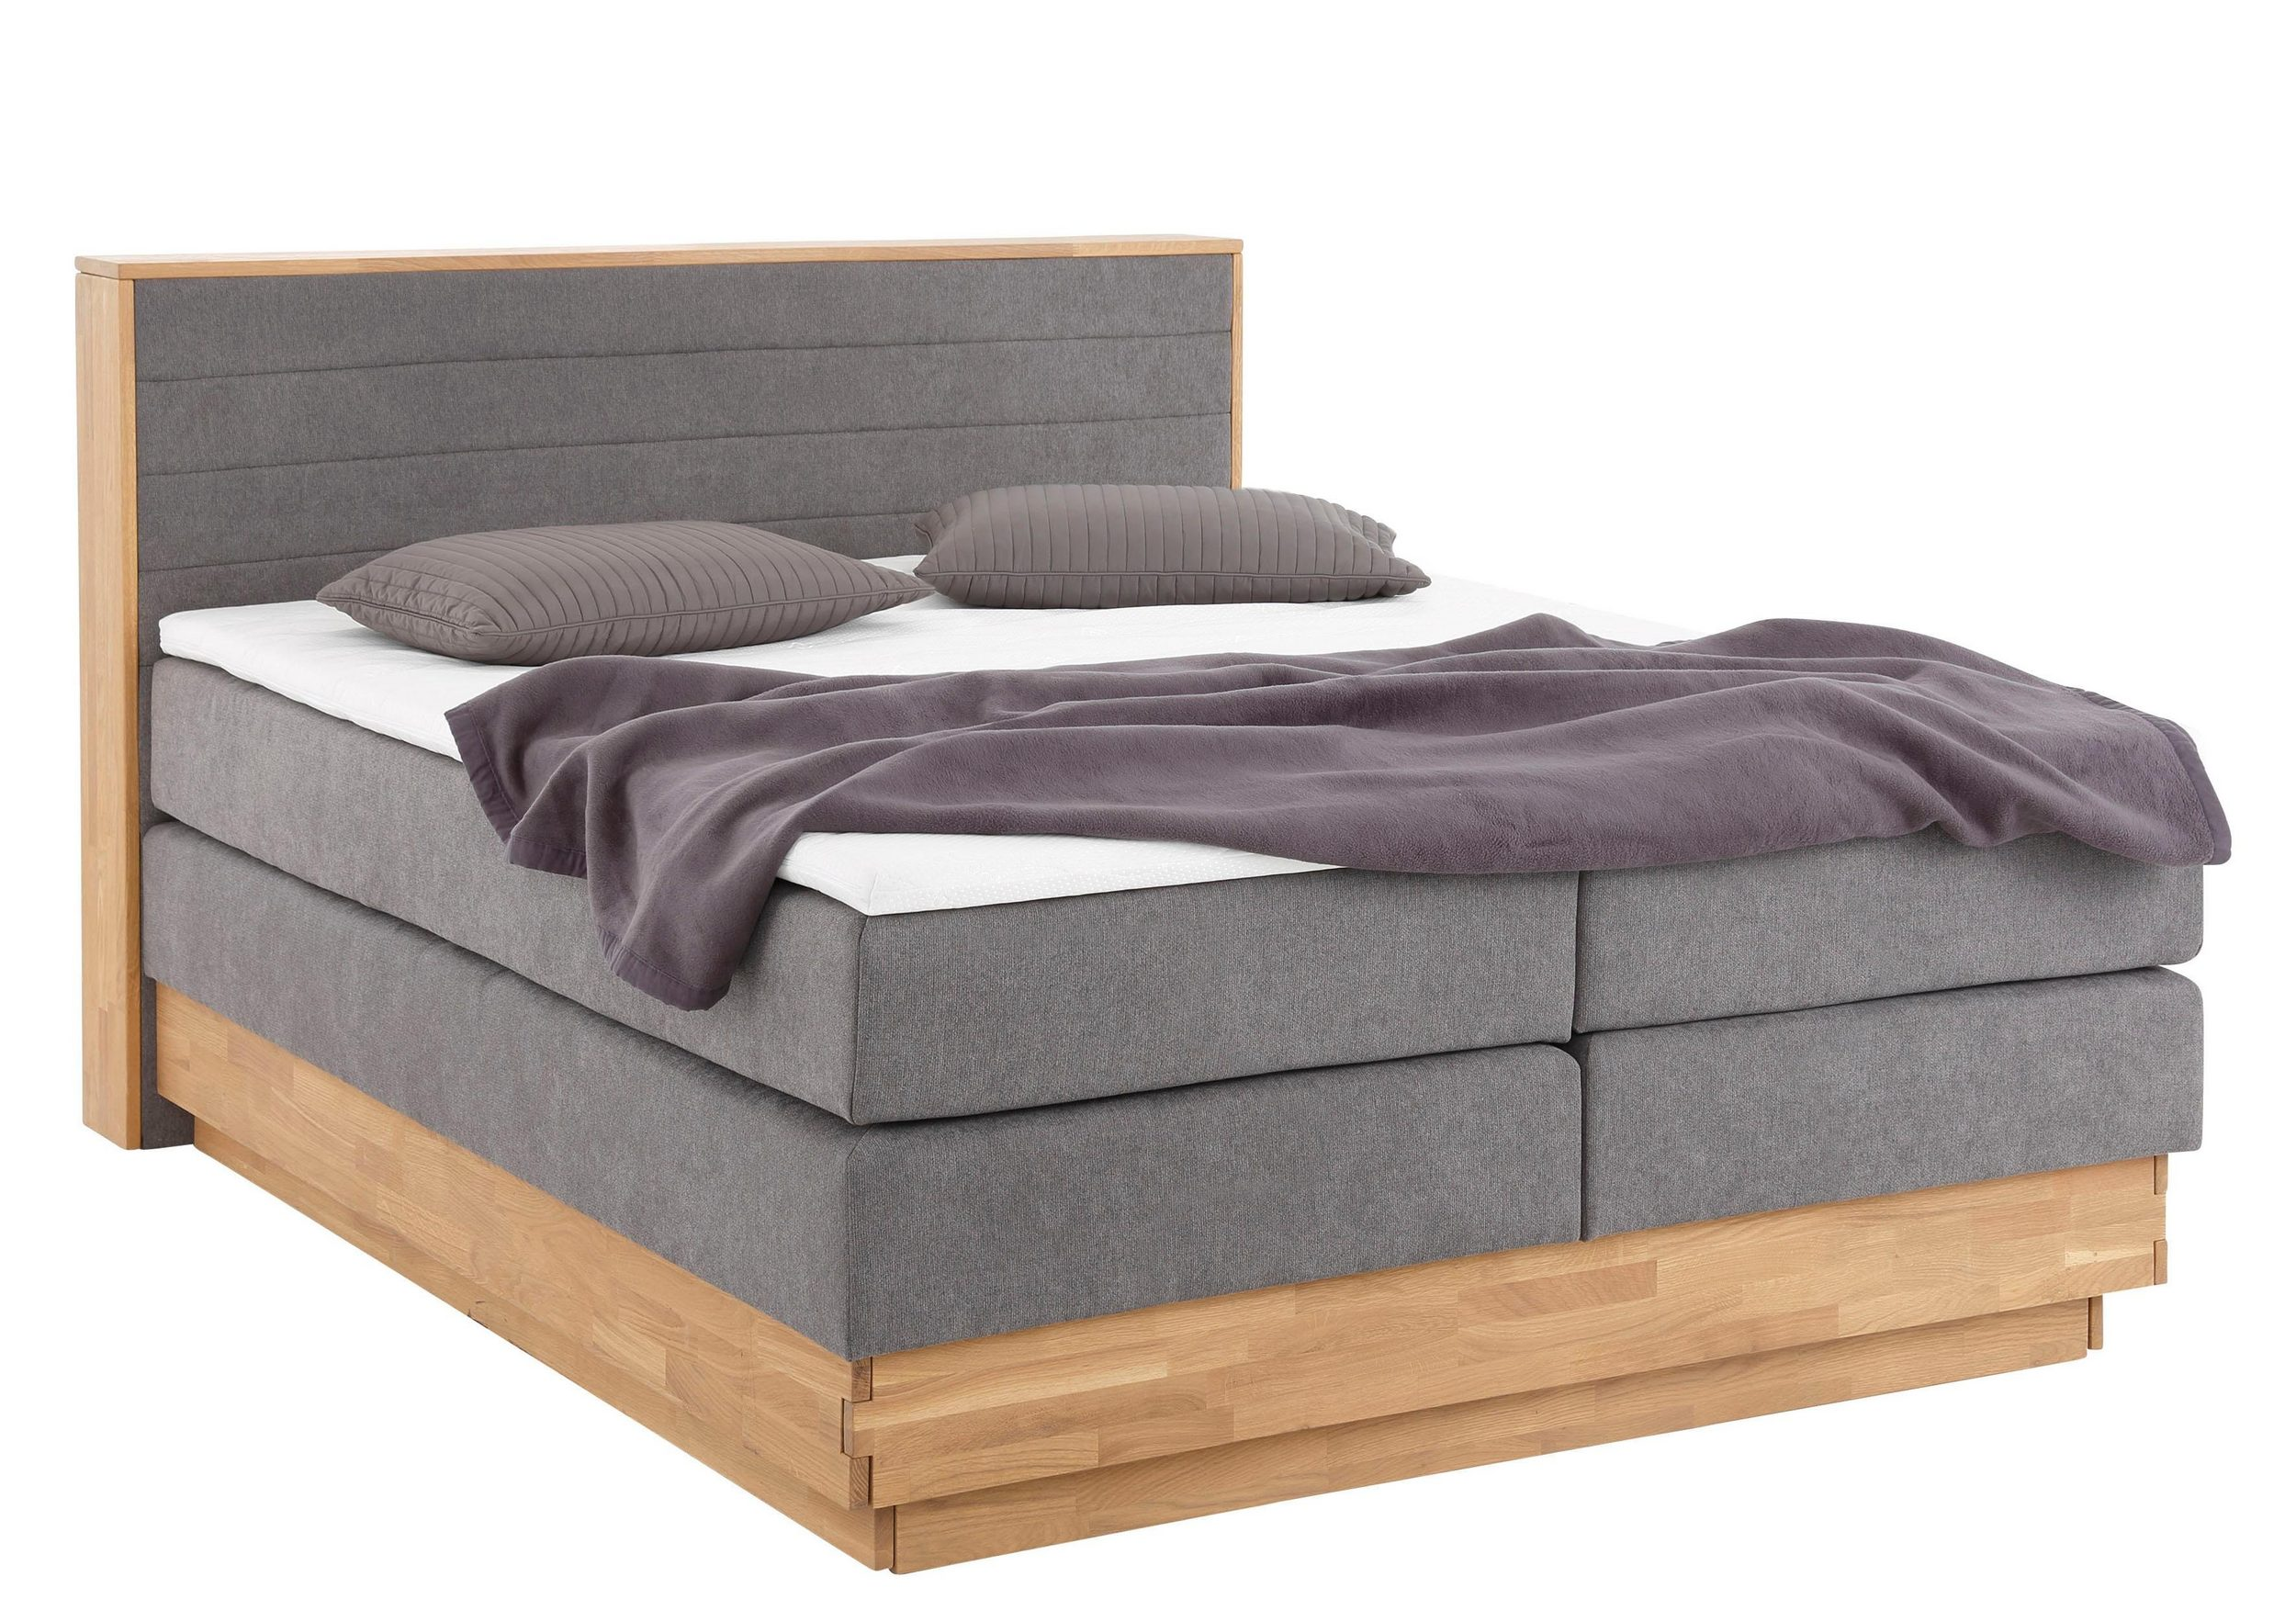 Premium collection by Home affaire Boxspringbett CAVAN - Premium collection by Home affaire